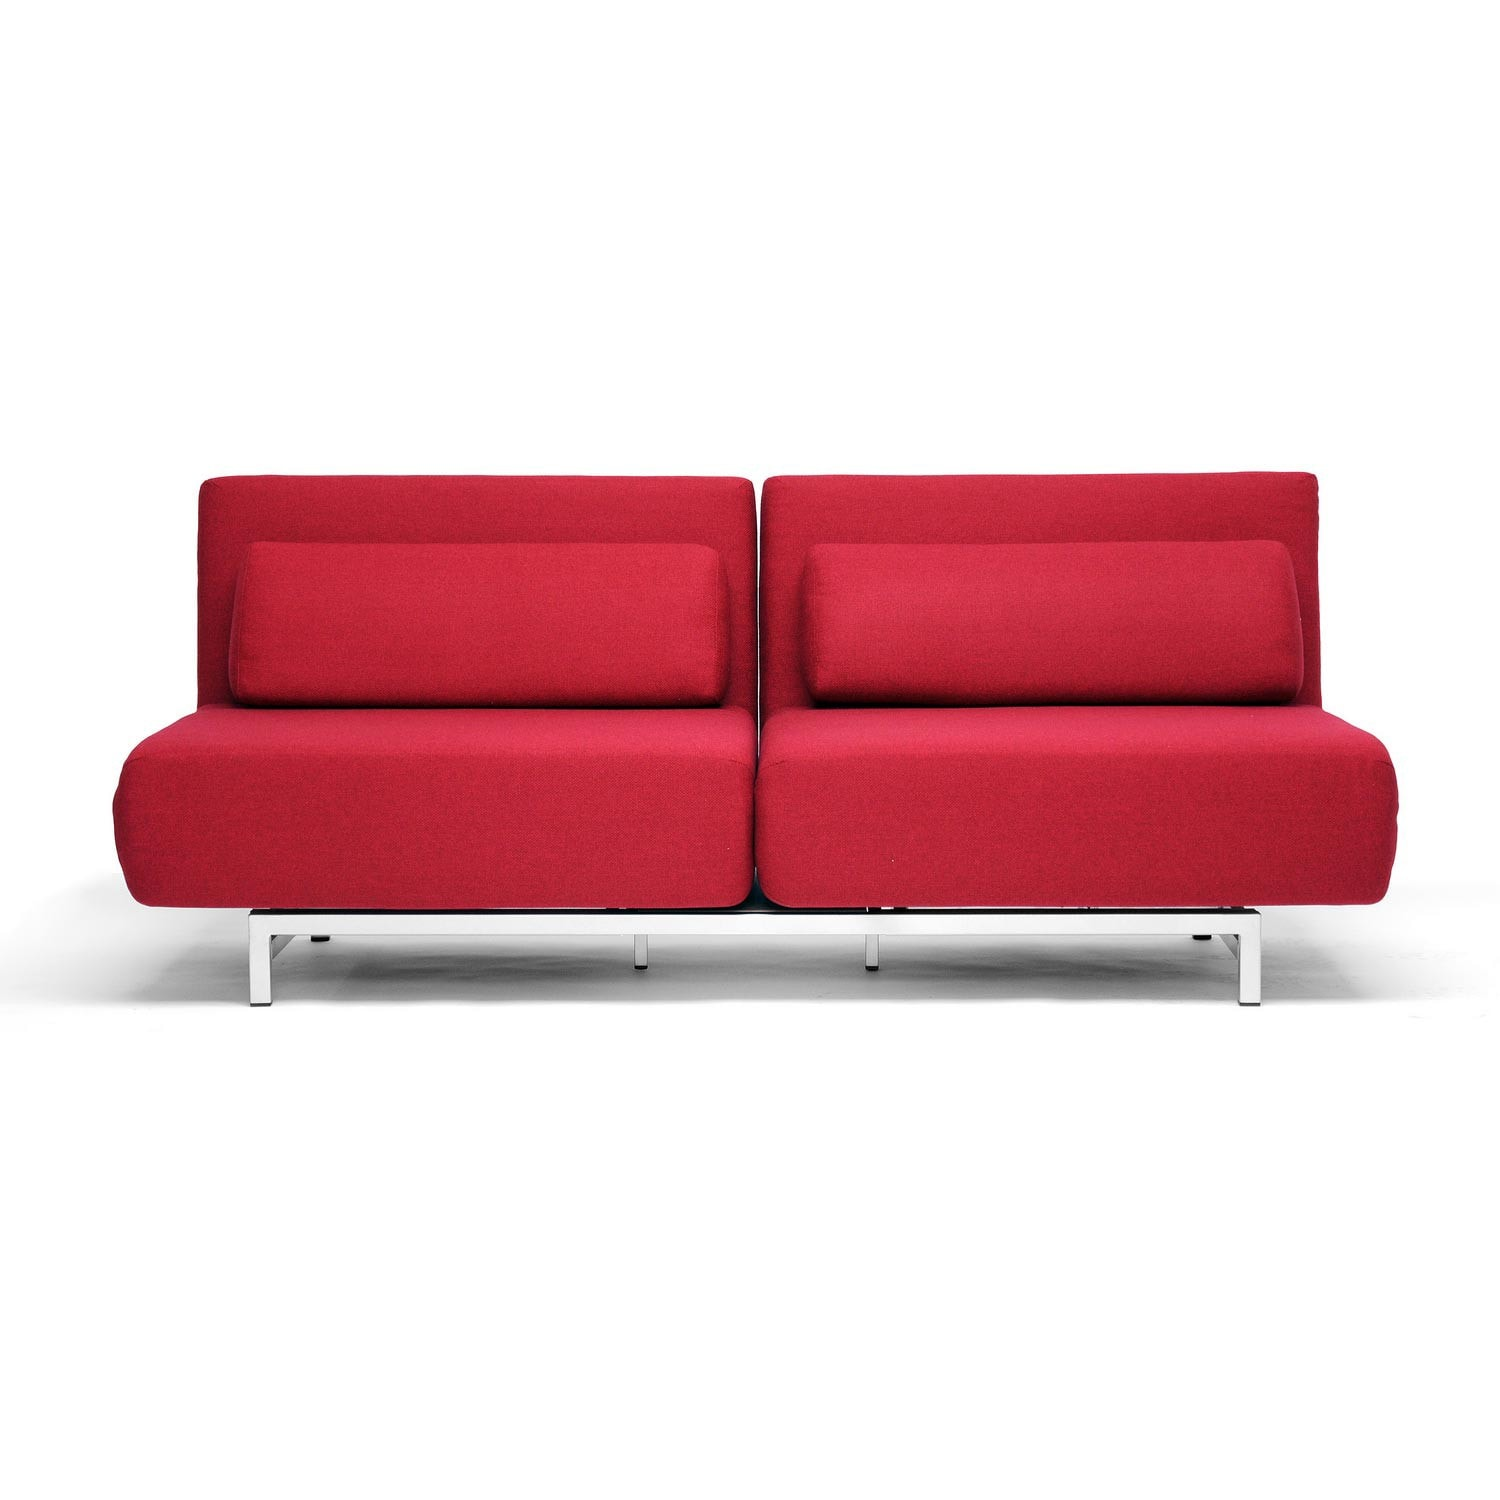 Anise Red Convertible Sofa Bed Overstock 2996870